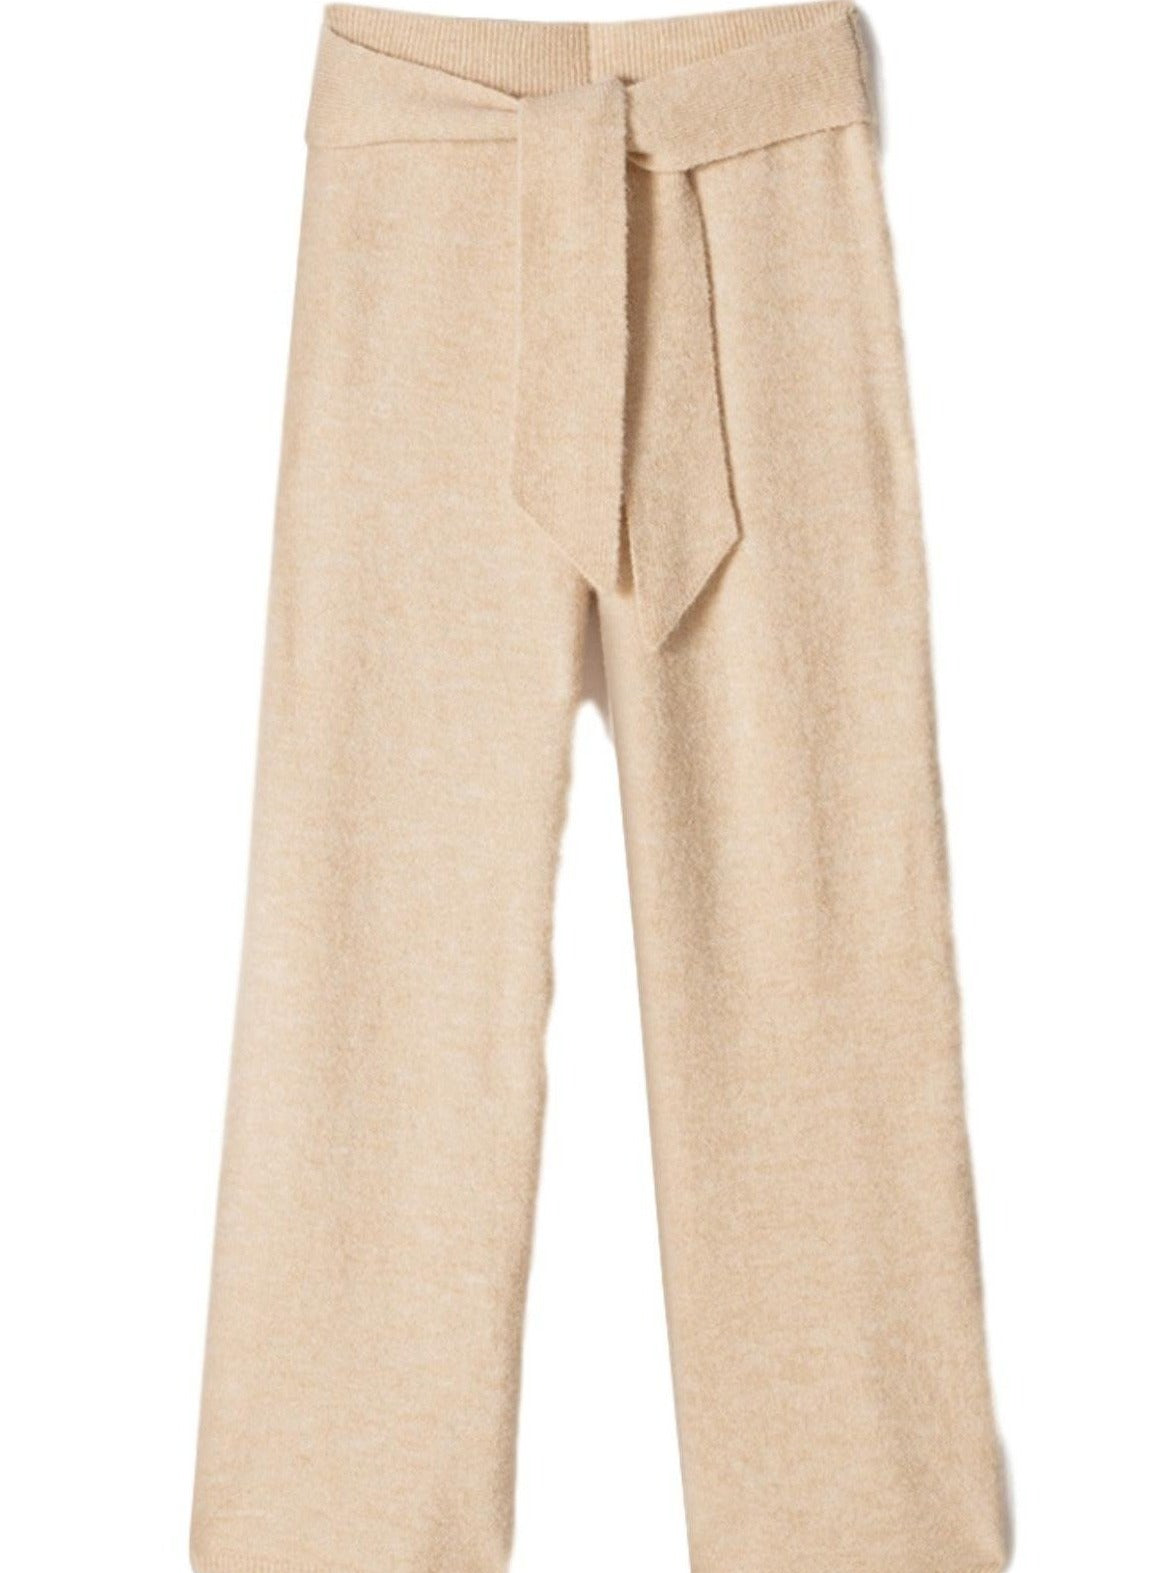 Nea Fluffy Knit Pants / Creme Womens Nanushka